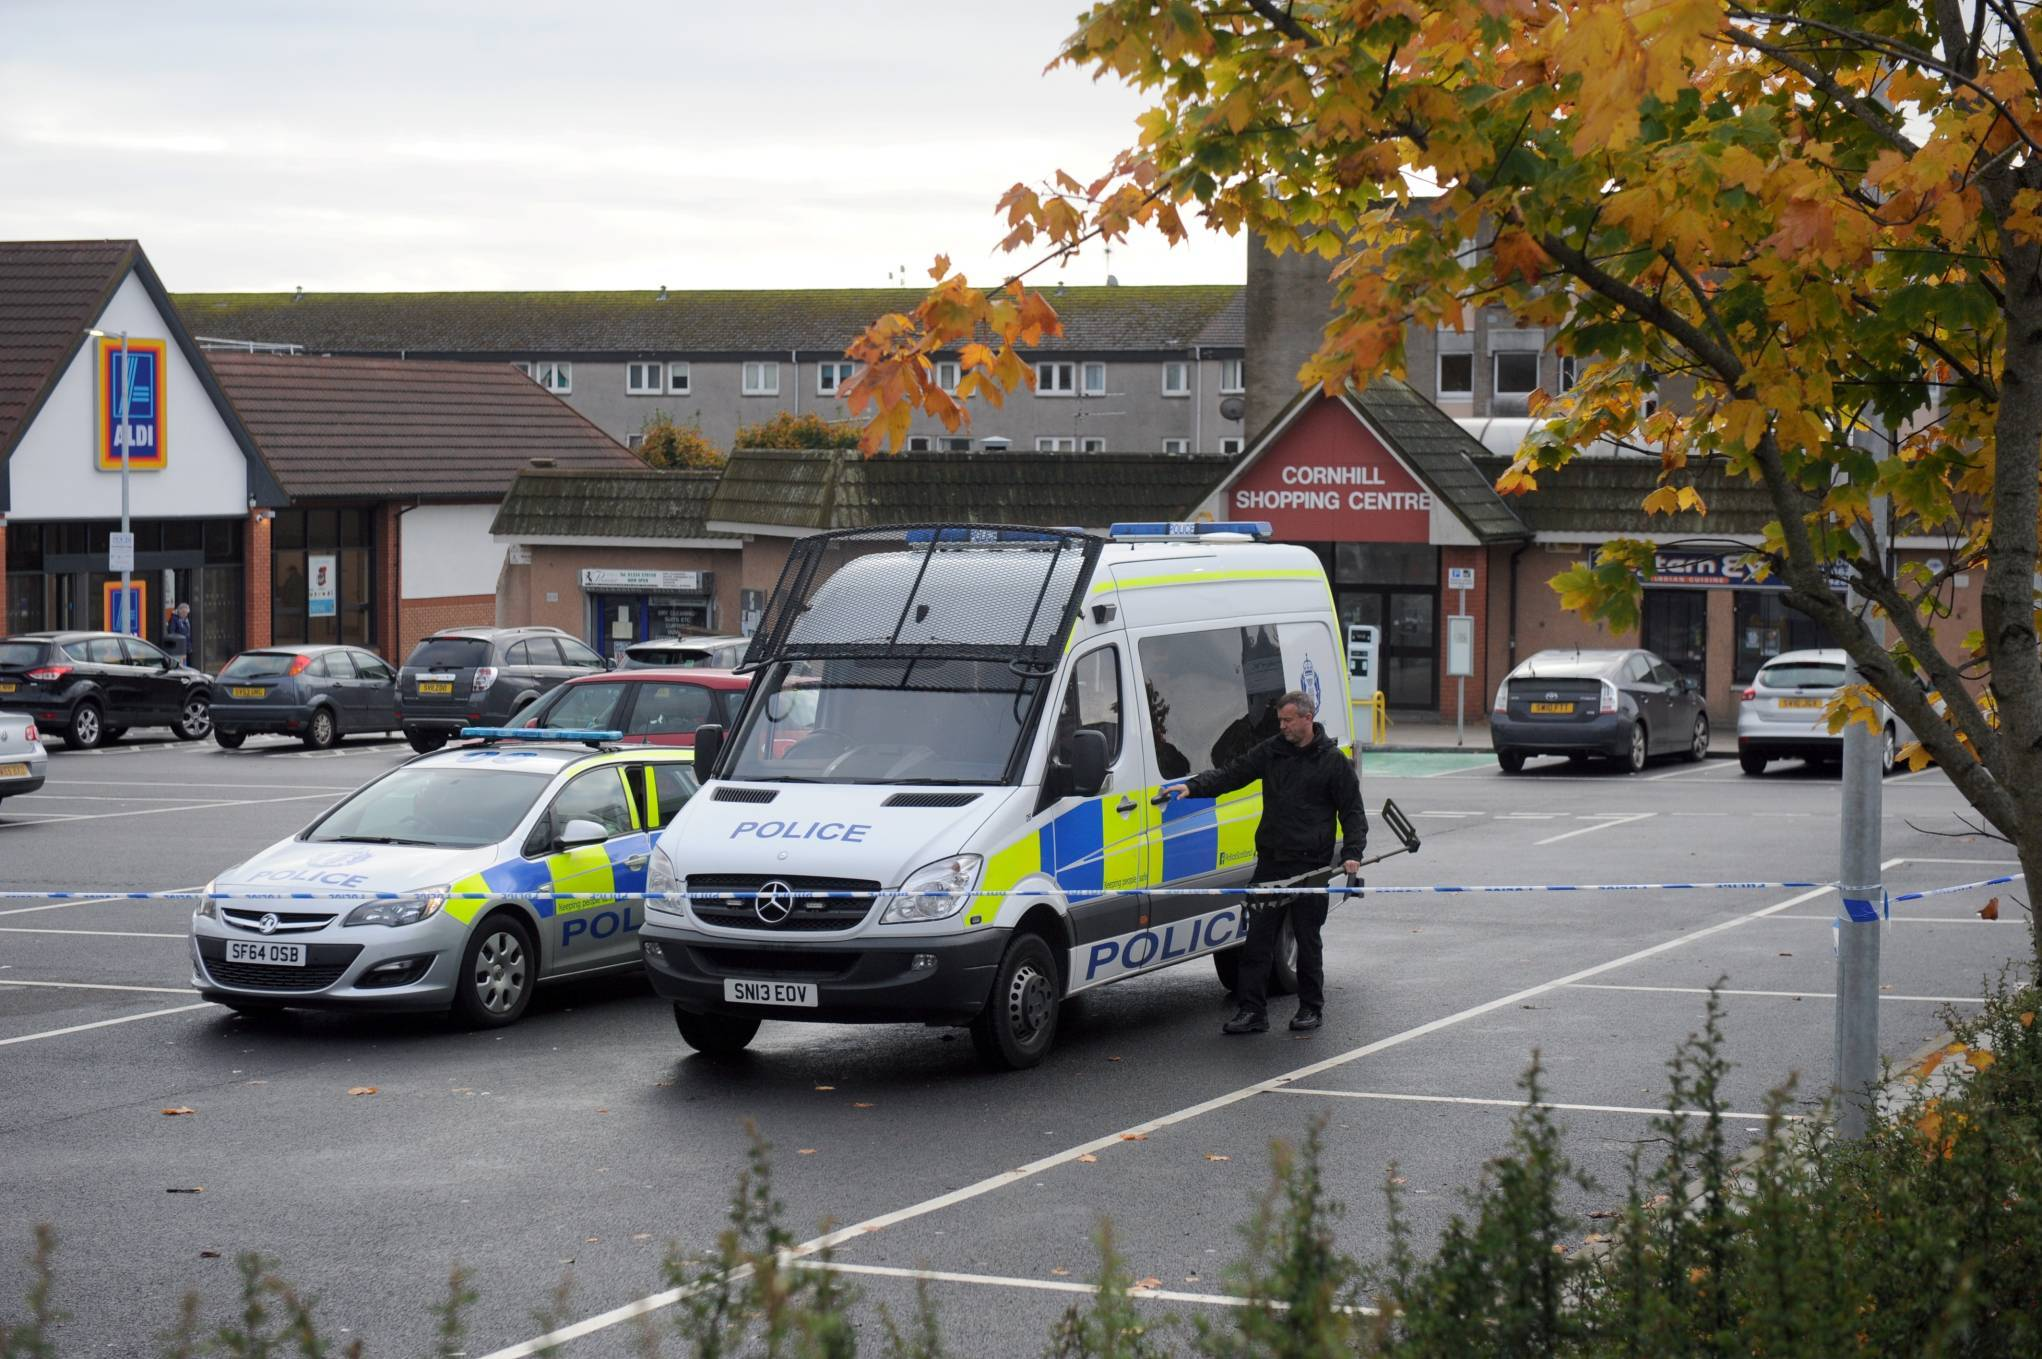 Aldi, Forresterhill.19th October 2016.Picture by KATH FLANNERY